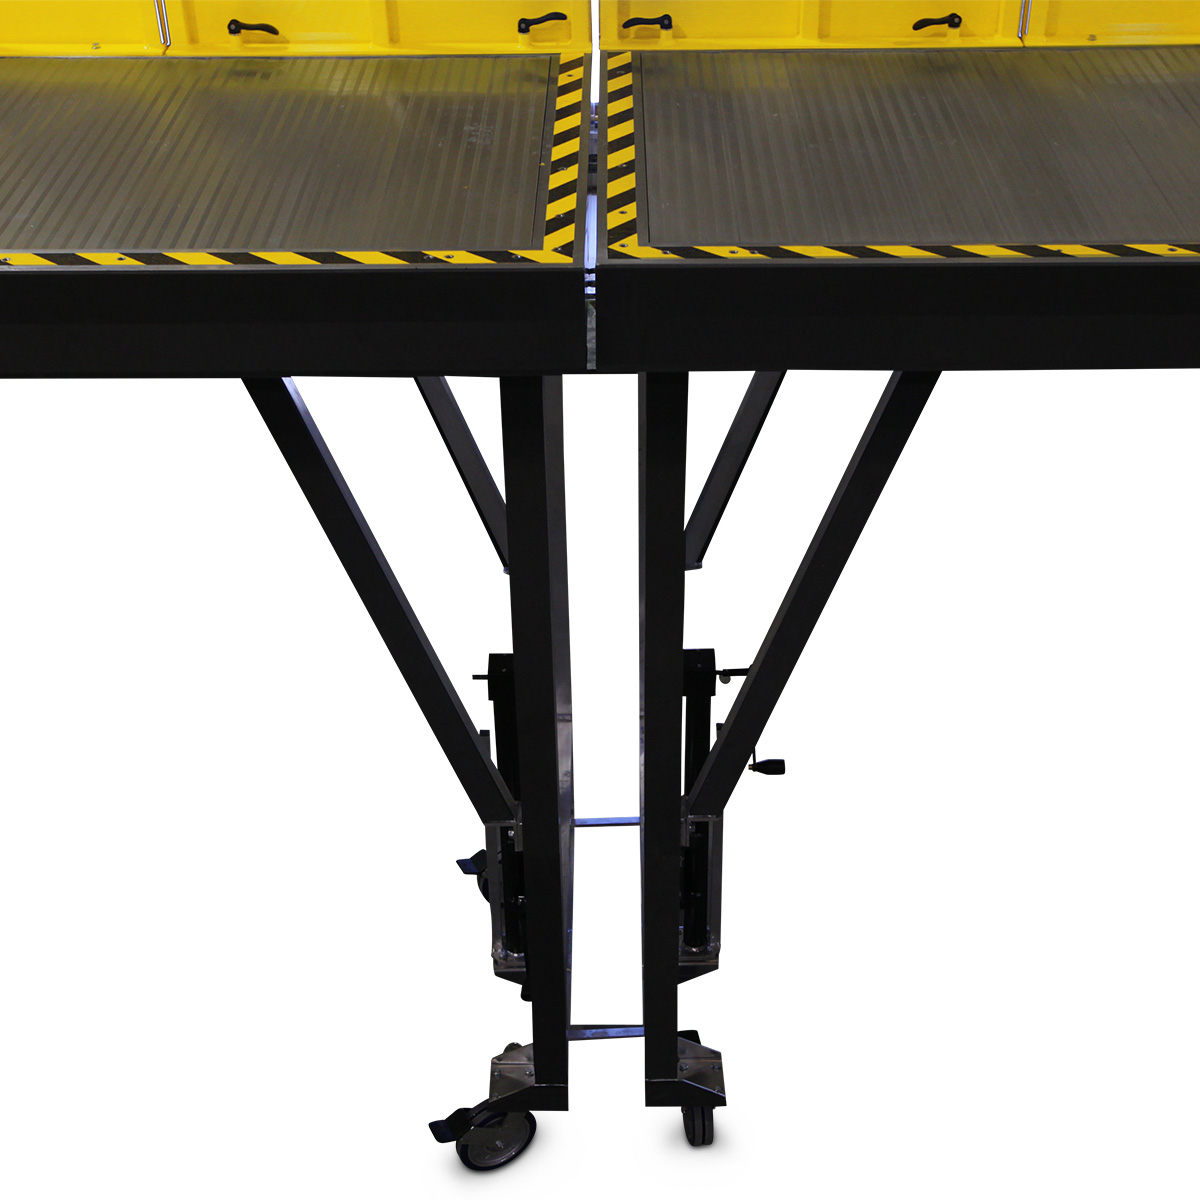 EC-725 | H225-M Helicopter – Daily Maintenance Stands OSHA compliant, adjustable height mobile work stand with protective foam on all leading edges and link bars for leveling work surfaces while on uneven shop floors.